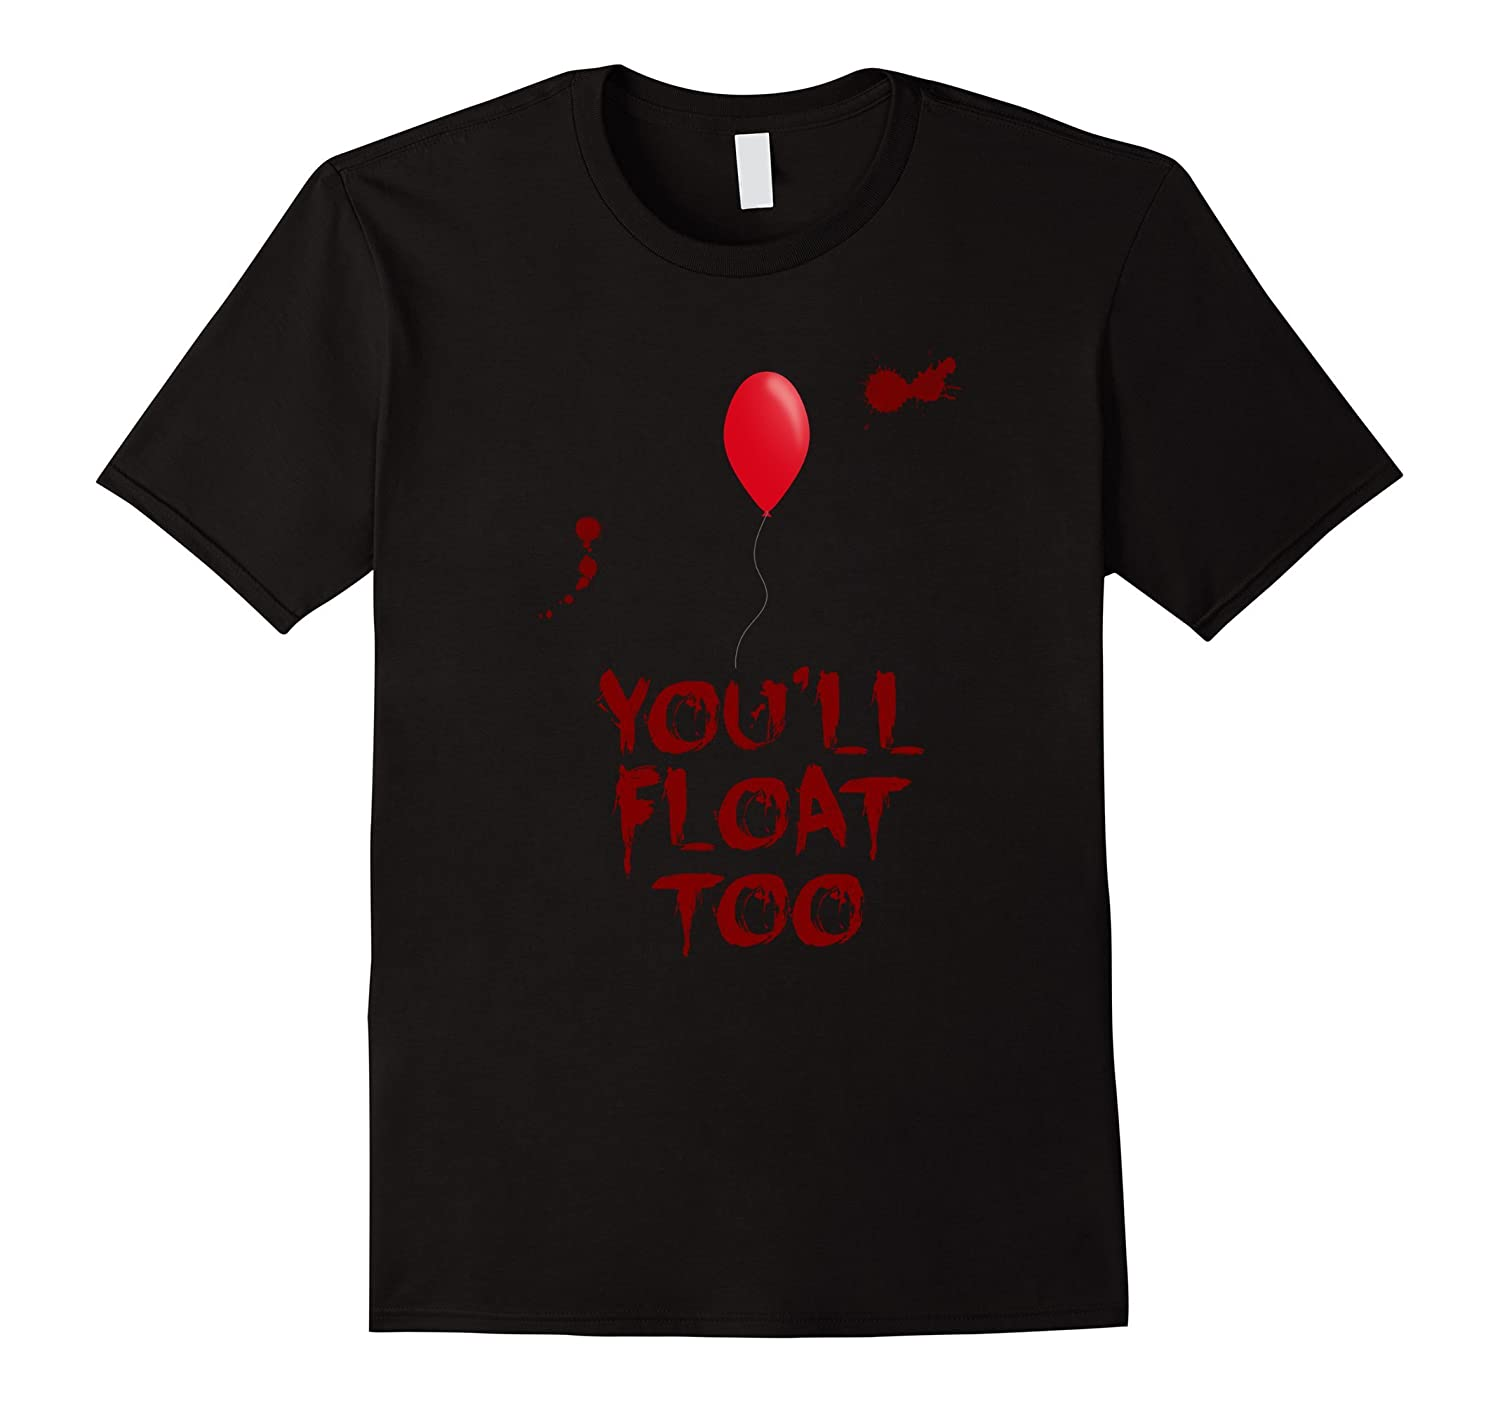 You'll float too - Red Balloon Horror T-Shirt-FL